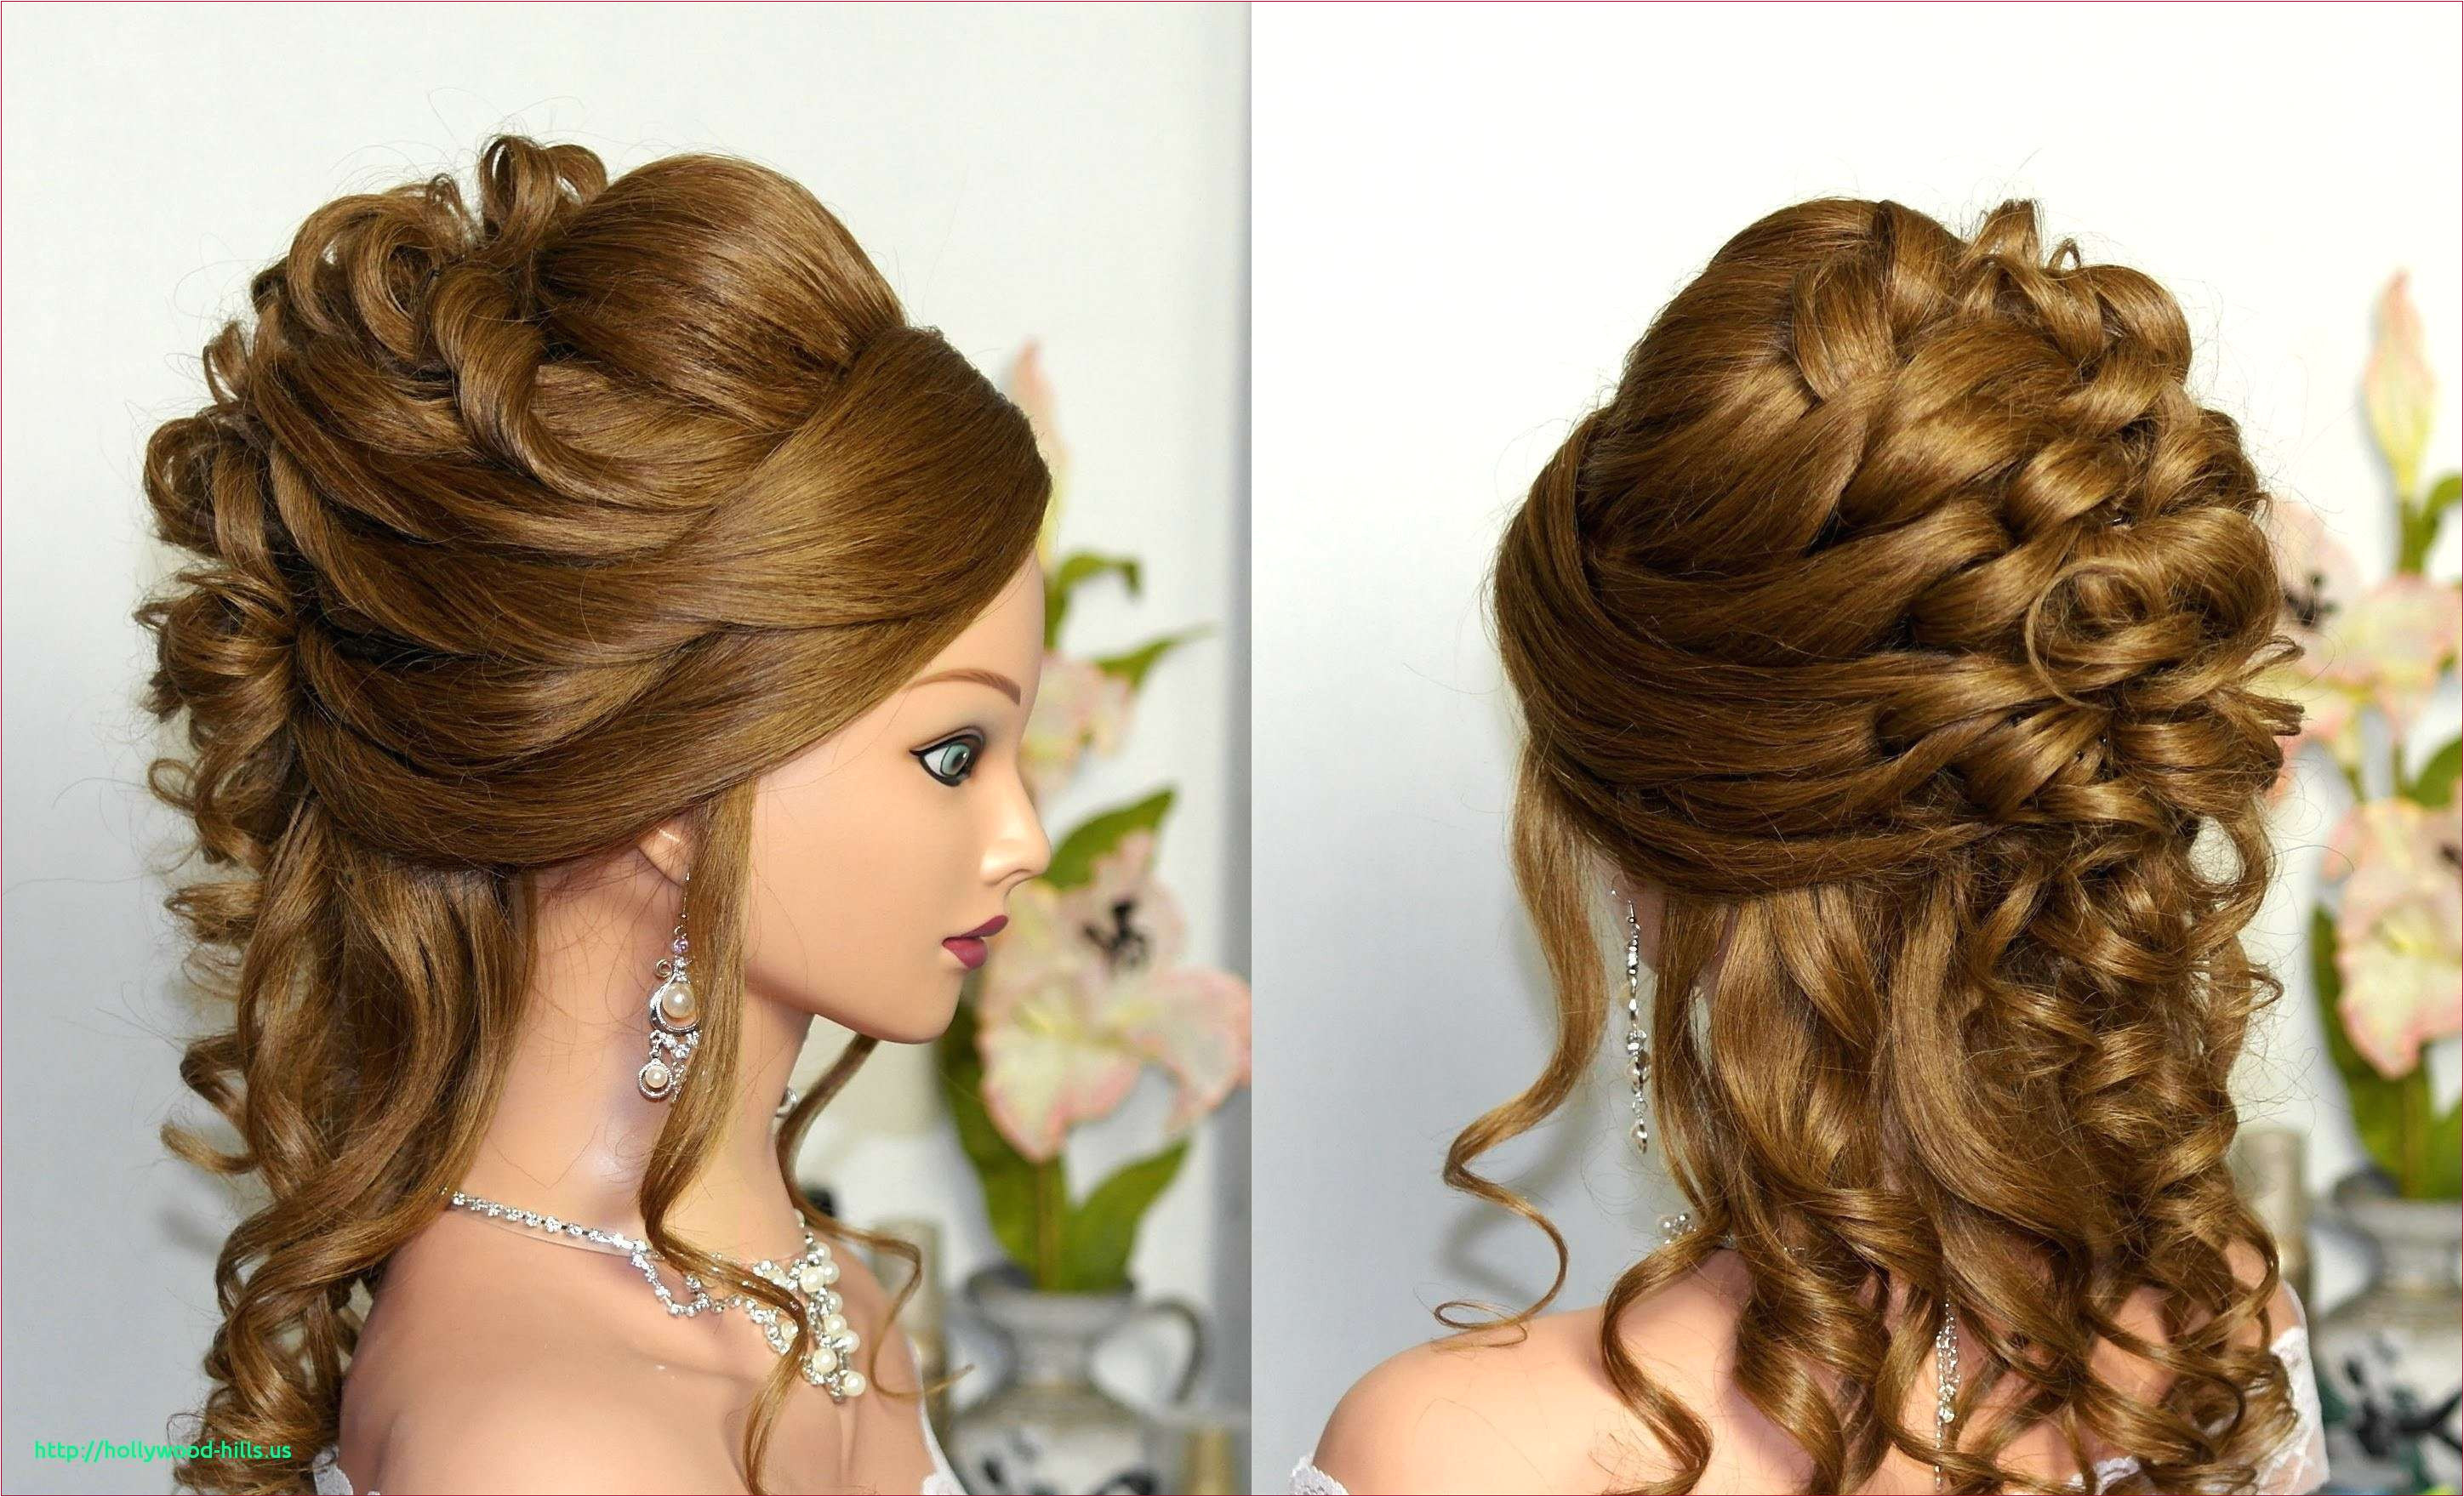 Prom Hairstyles Buns to the Side Inspirational Wedding Hairstyles Curls to the Side Inspirational Wedding